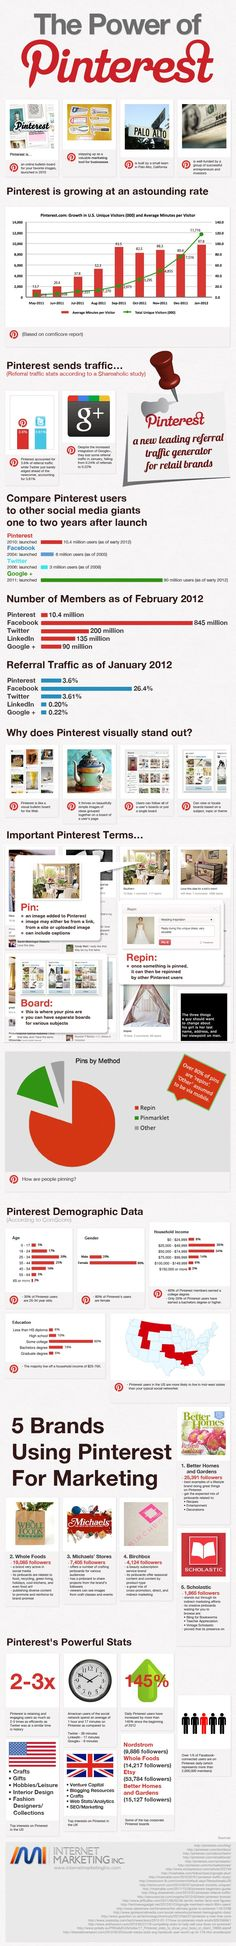 The power of Pinterest. Pinterest demographics.